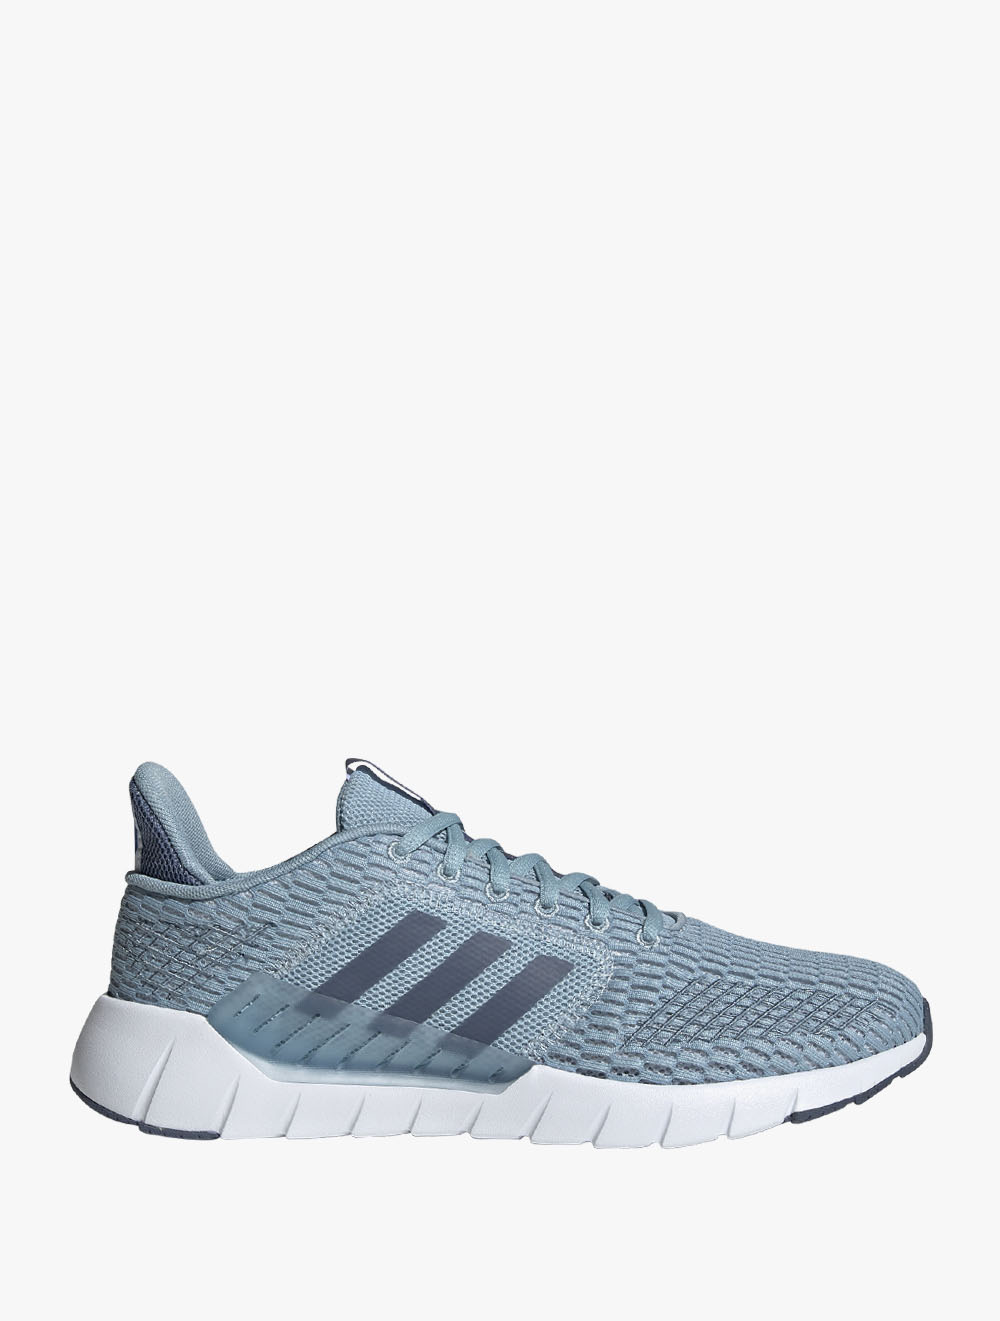 Adidas Asweego CC Women's Running Shoes